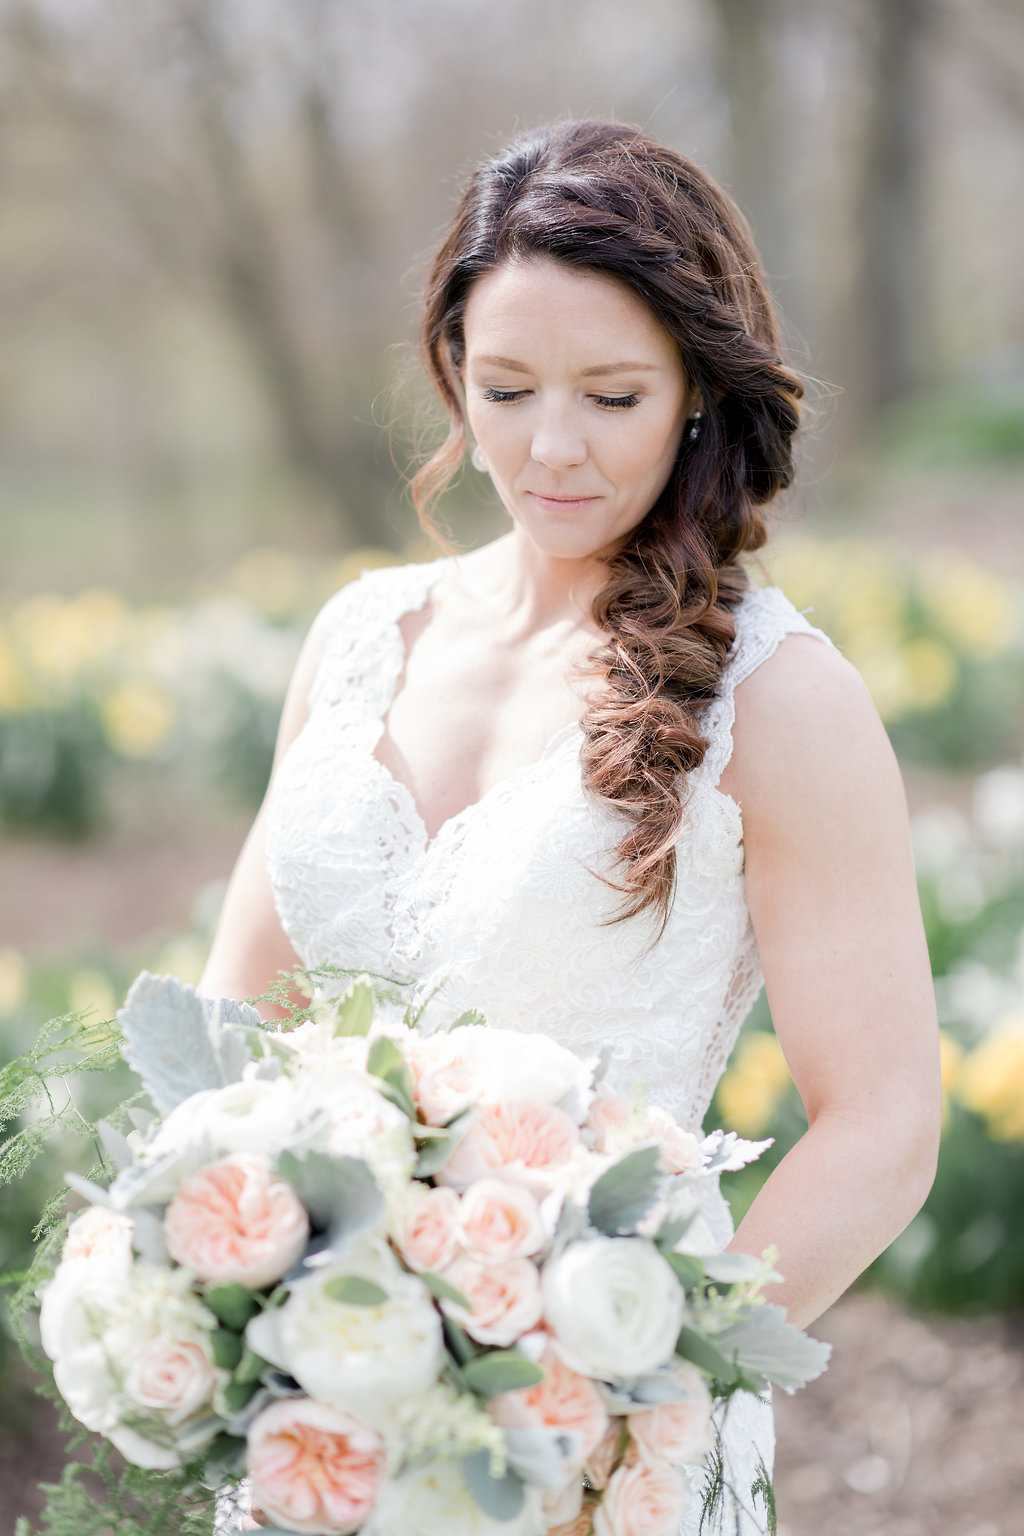 Rustic Barn Wedding - Riverside on the Potomac Wedding - The Overwhelmed Bride Wedding Blog